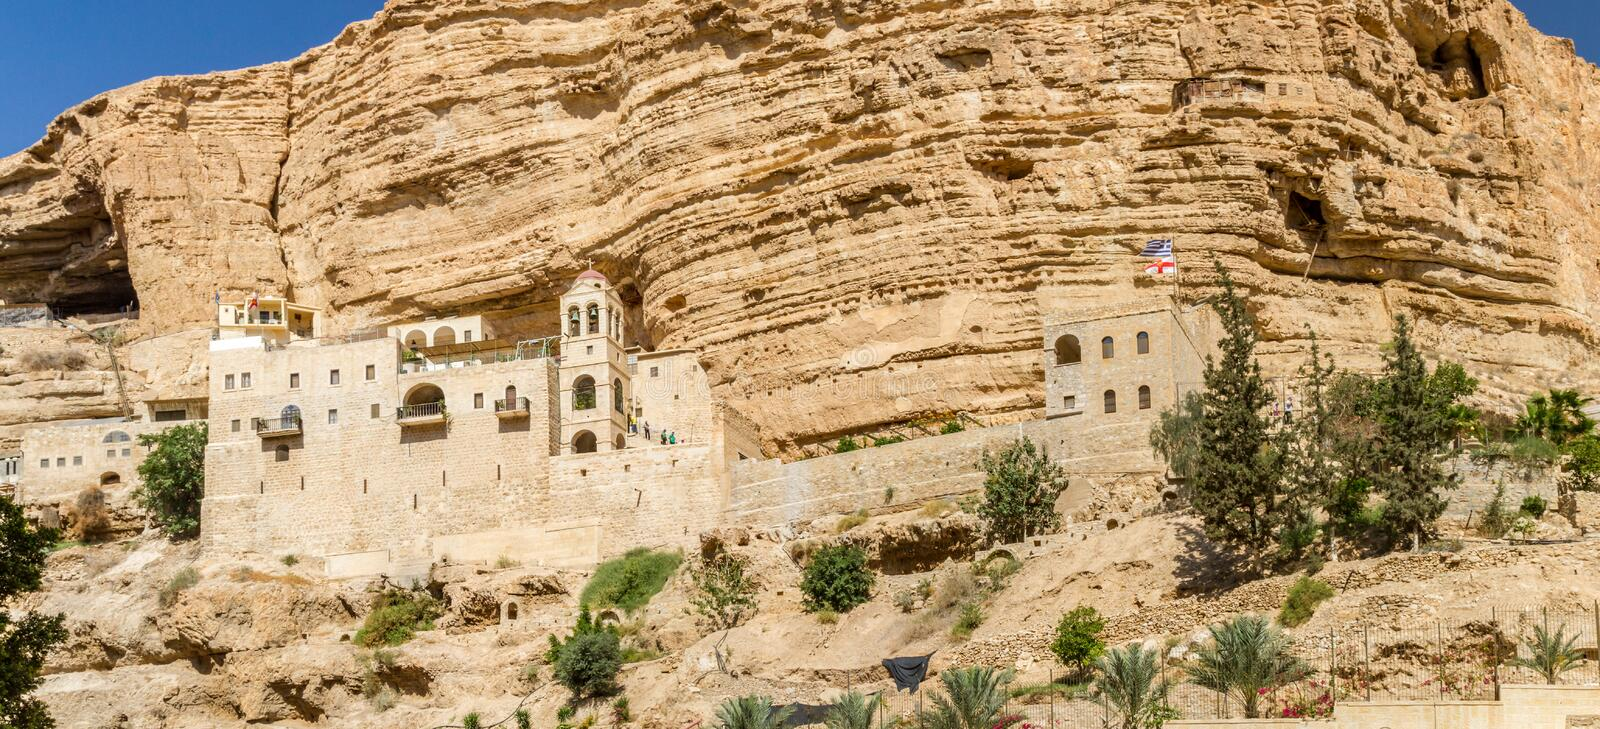 The Wadi Qelt, Monastery of St. George in Israel. The monastery of Saint George of Choziba in Judaean Desert near Jericho in the Holy Land, Israel stock image